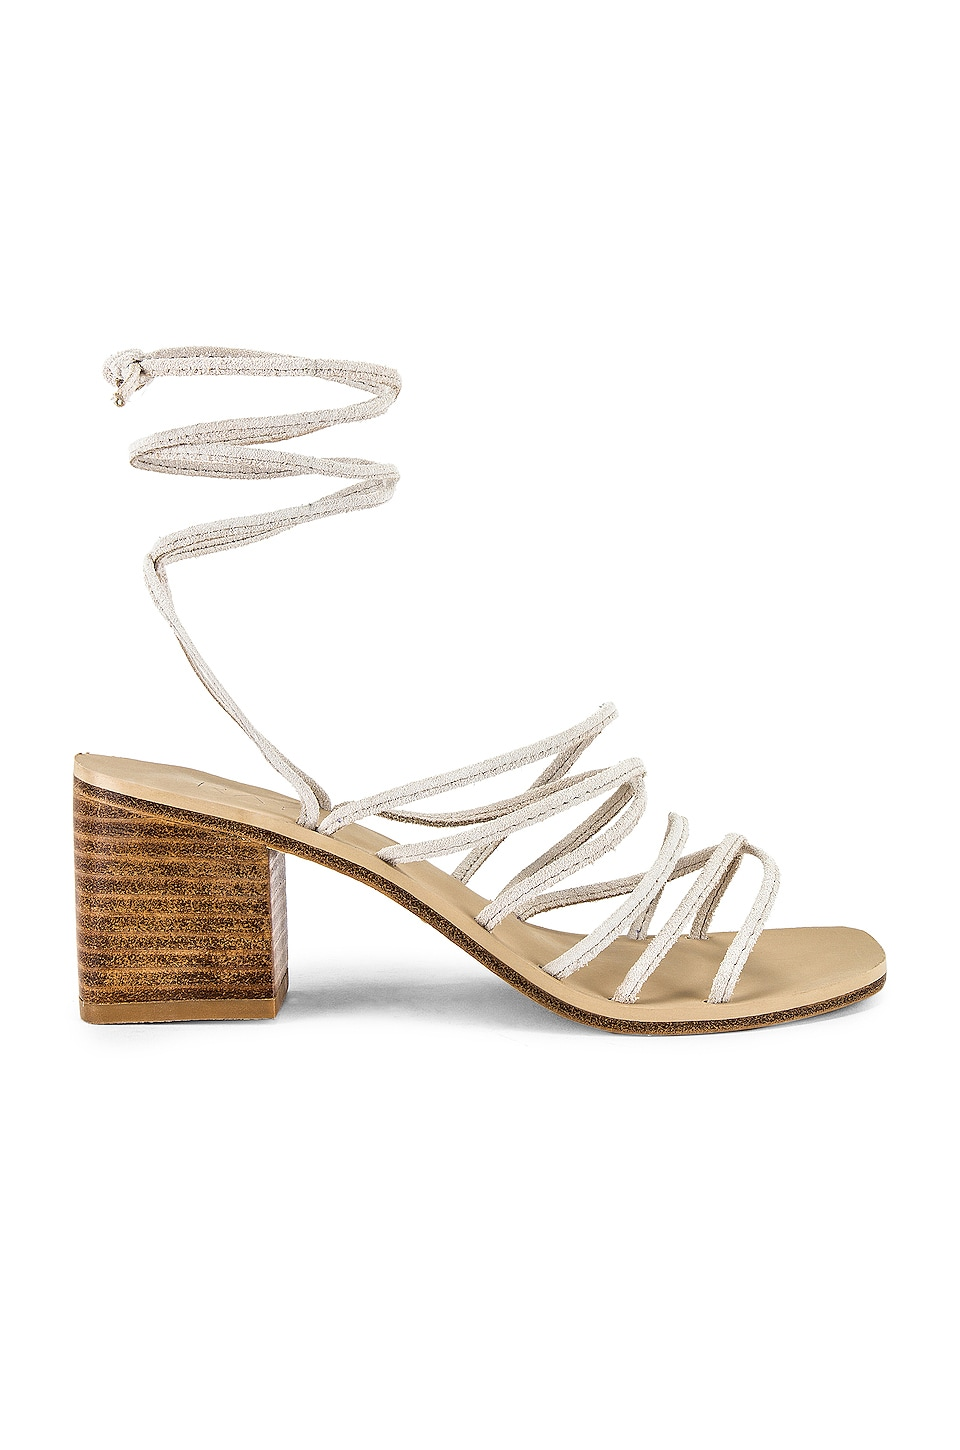 RAYE Cross Sandal in Nude